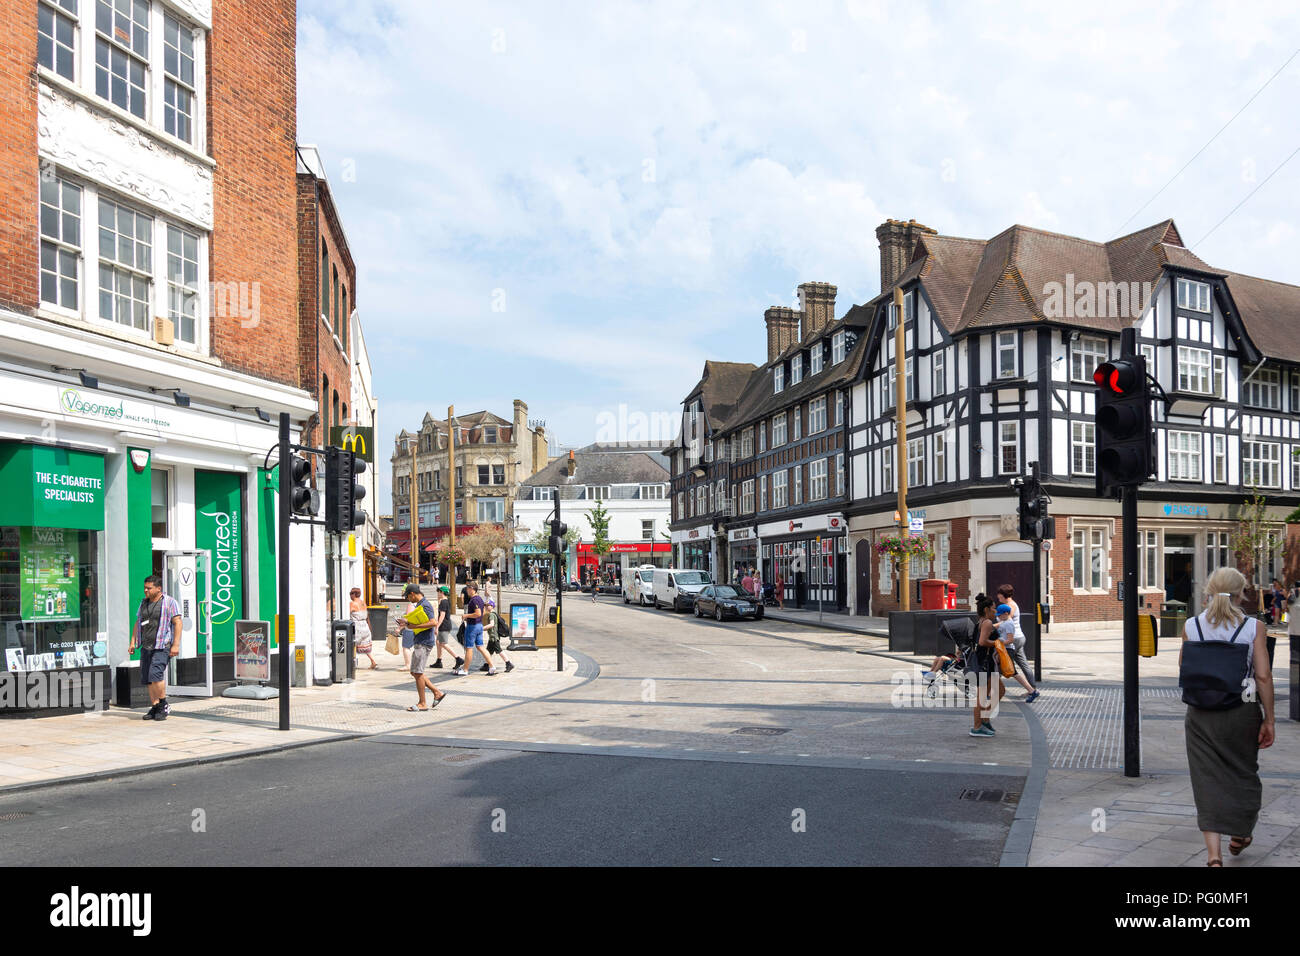 Market Square, High Street, Bromley, London Borough of Bromley, Greater London, England, United Kingdom - Stock Image